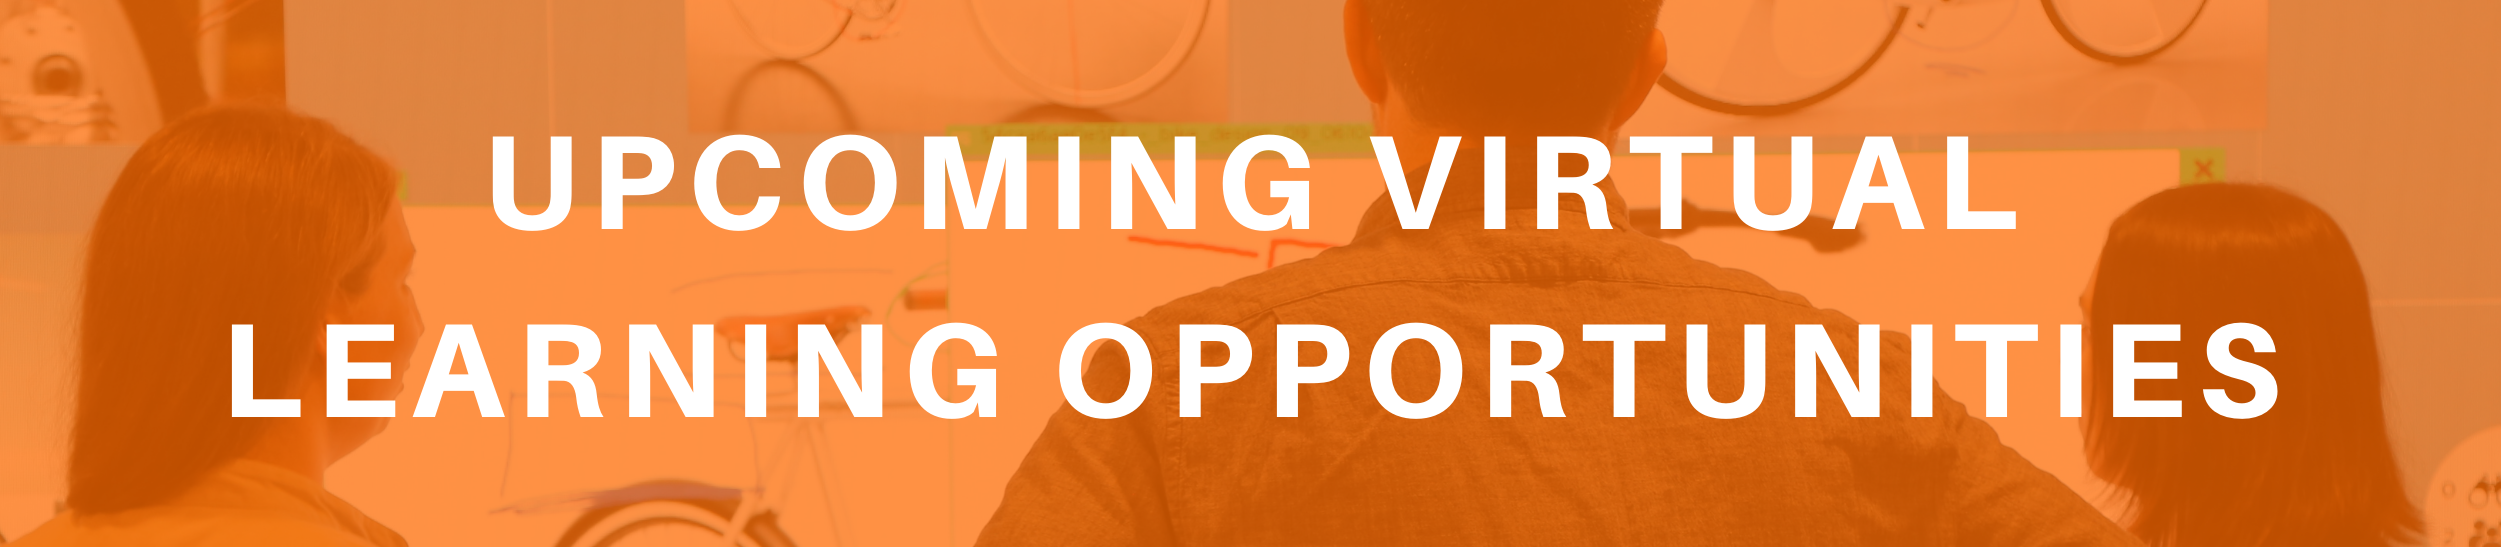 UPCOMING VIRTUAL LEARNING OPPORTUNITIES